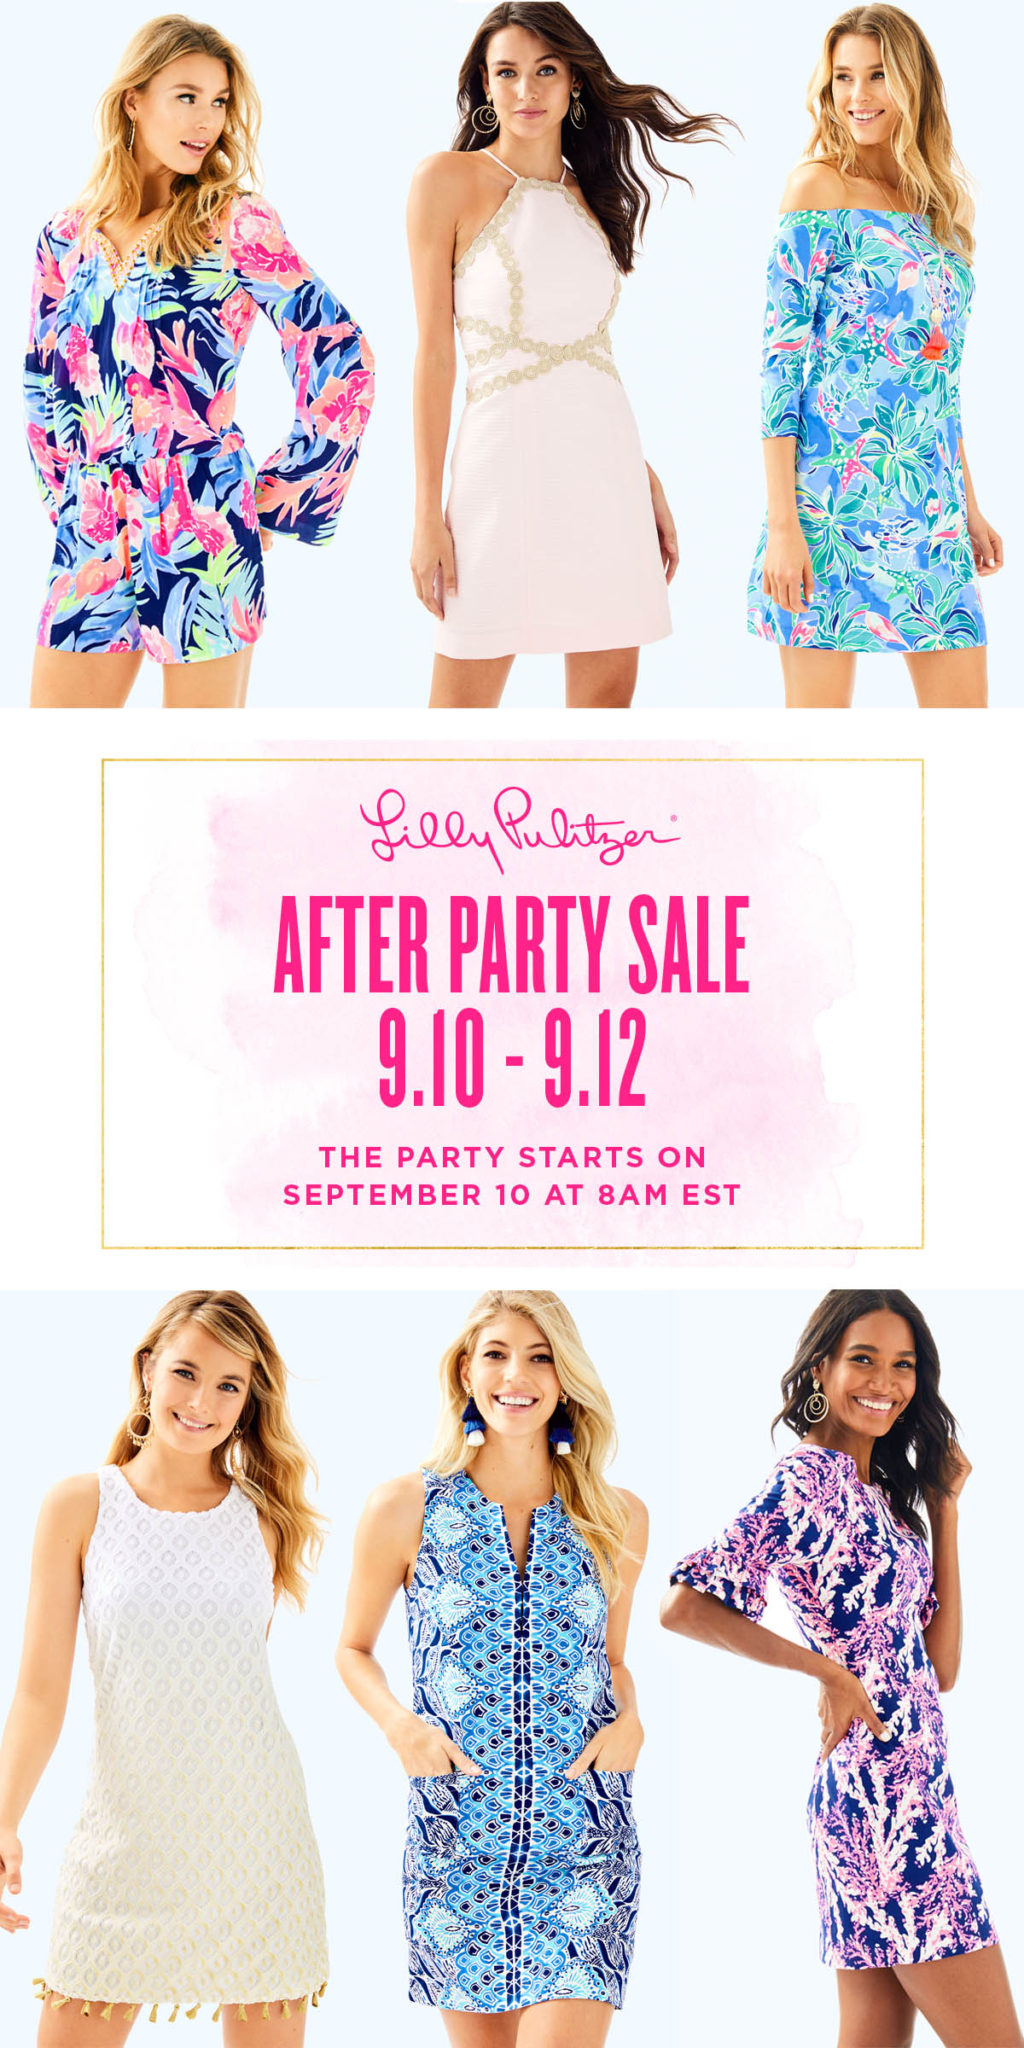 How to Shop the Lilly Pulitzer After-Party Sale